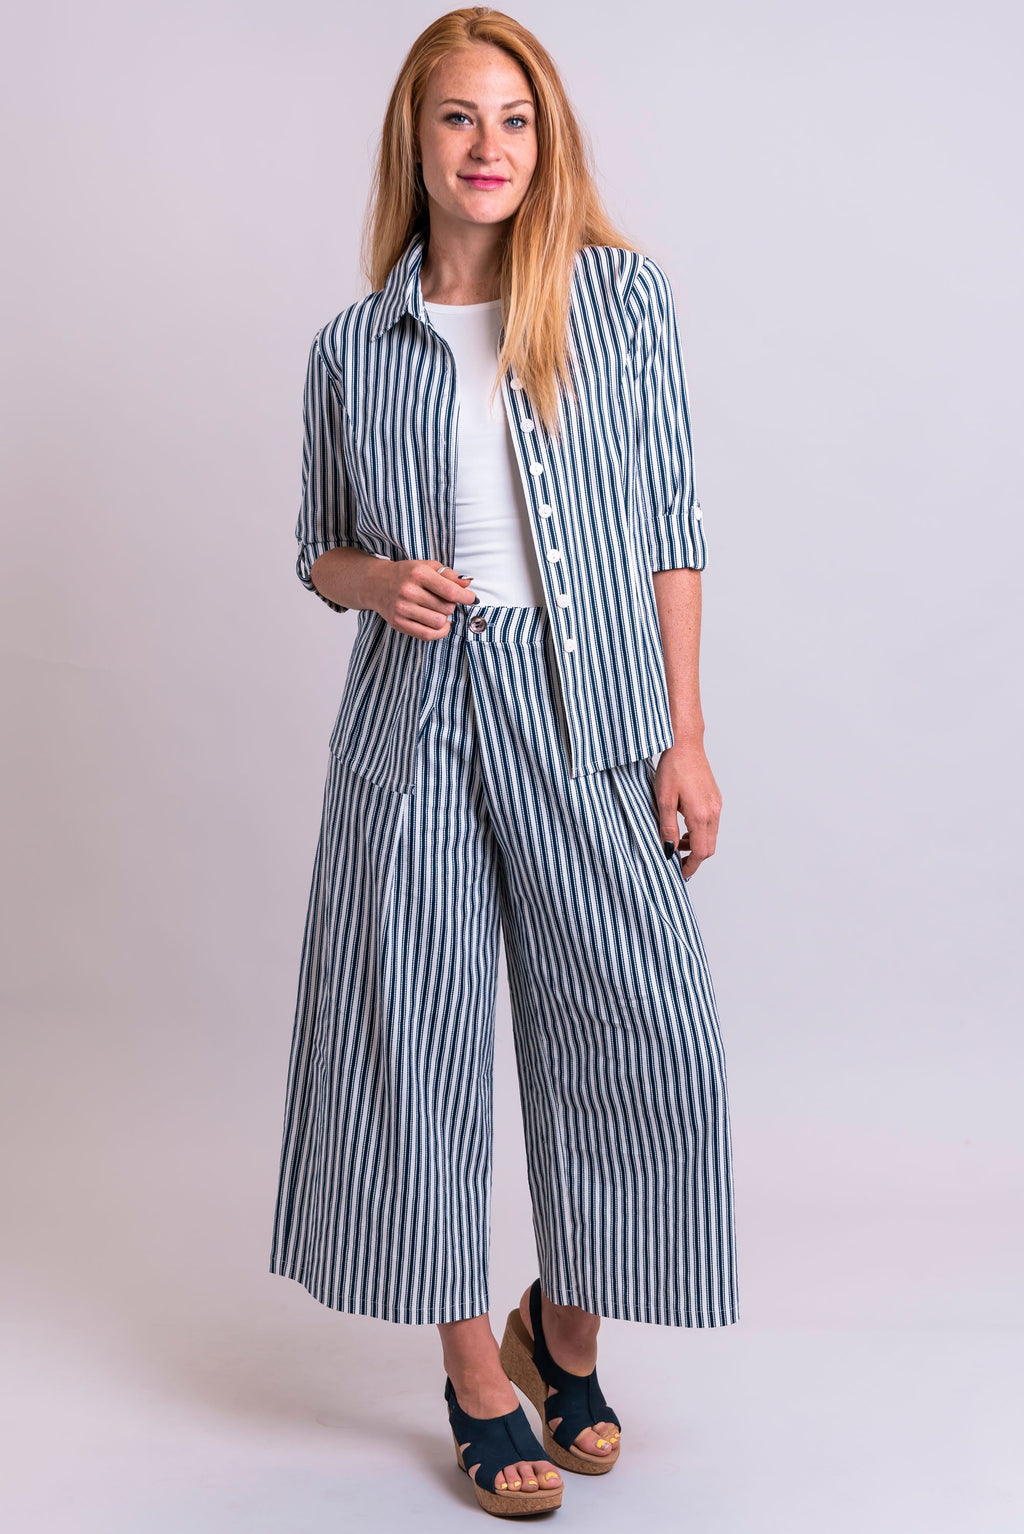 Marley Jacket, Indigo Stripe, Linen Viscose - Blue Sky Clothing Co